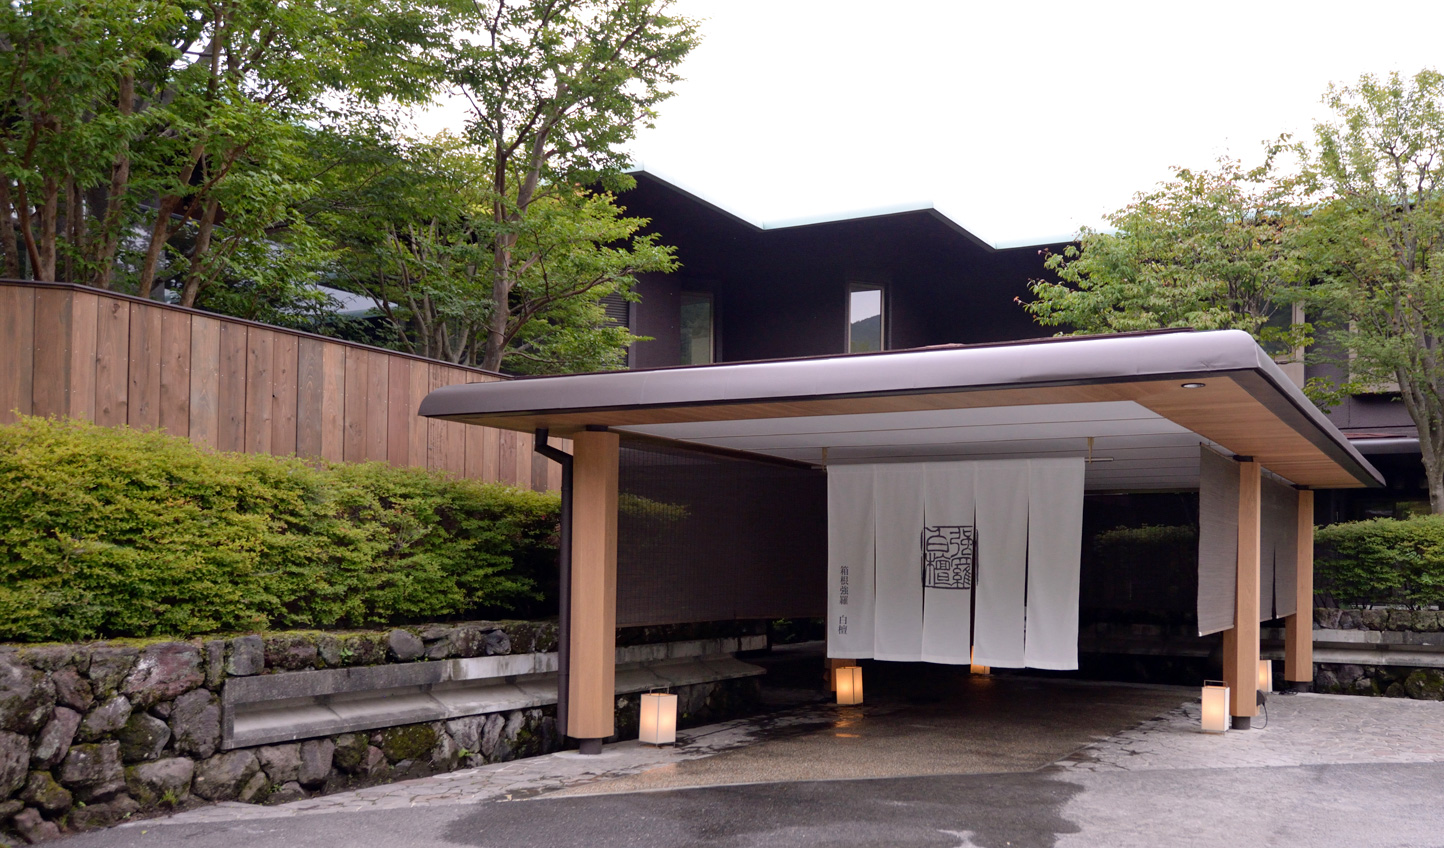 Drawn in by the soft scent of sandalwood, discover serenity at Byakudan